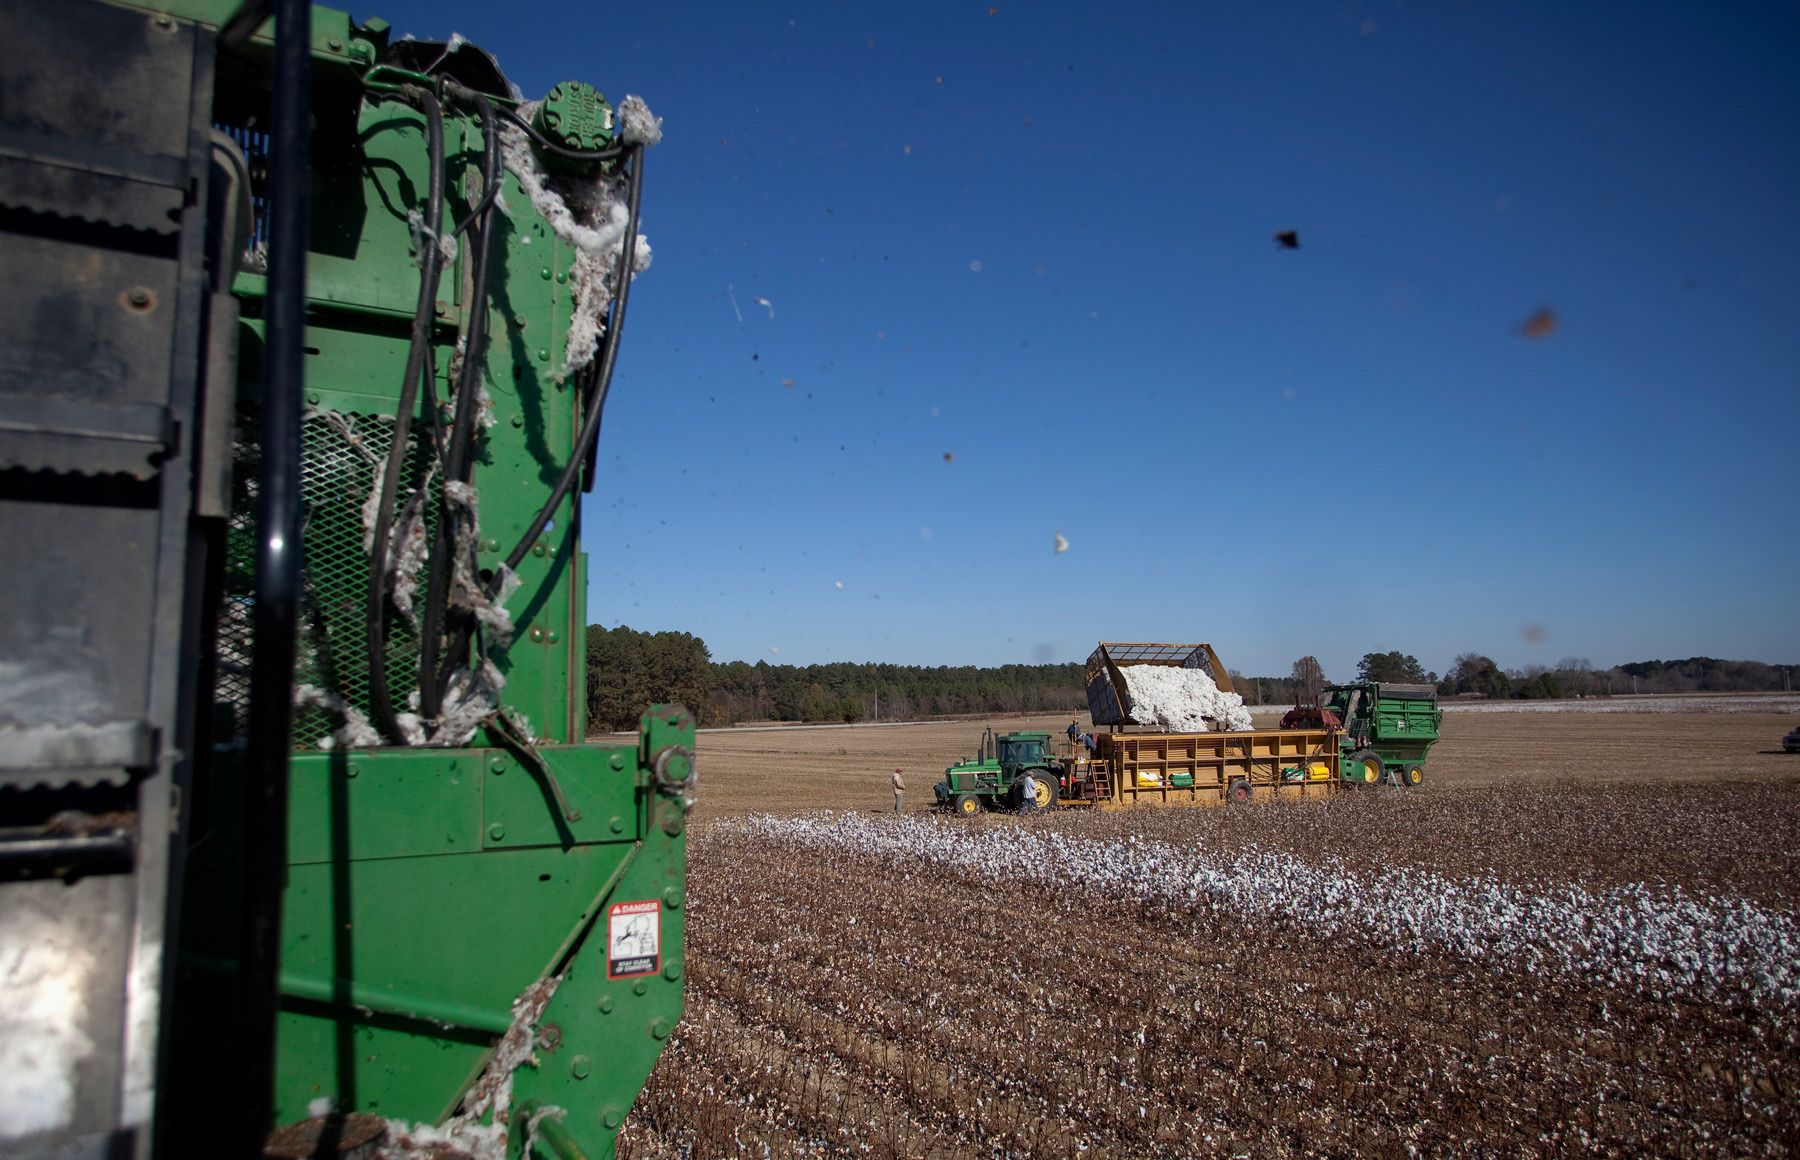 A picker harvests cotton as a crew dumps the picked cotton into a modular builder for Baxley & Baxley Farms on a cotton field in Minturn, South Carolina November 24, 2012. The cotton harvest takes place in South Carolina from October through November and is planted and grows along a corridor approximately 30 miles on each side of Interstate I-95. About 80 percent of the cotton harvested by this farm is exported outside the United States. REUTERS/Randall Hill (UNITED STATES)